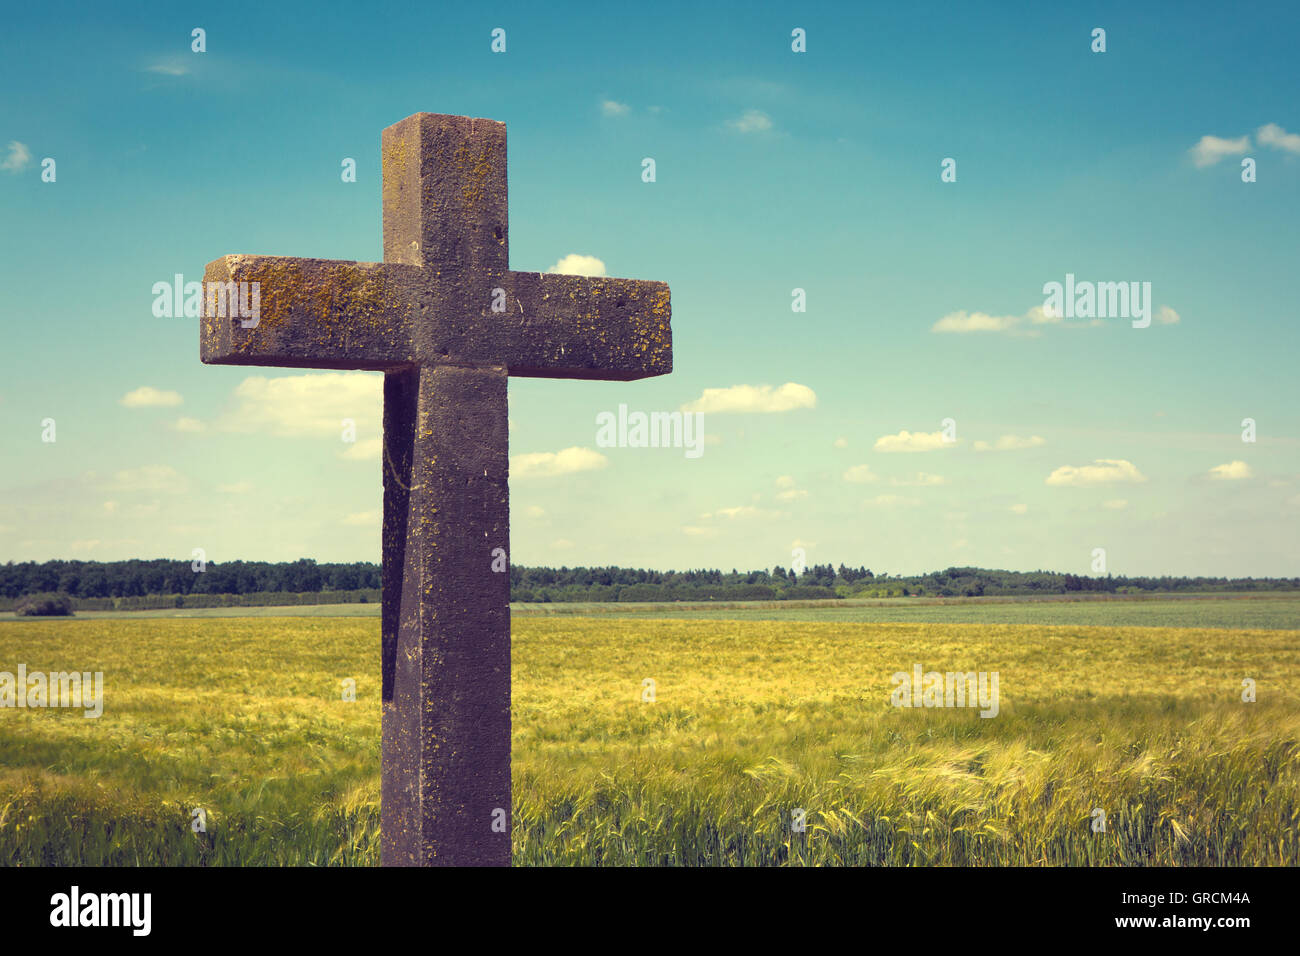 Stone Cross On The Sidelines - Stock Image